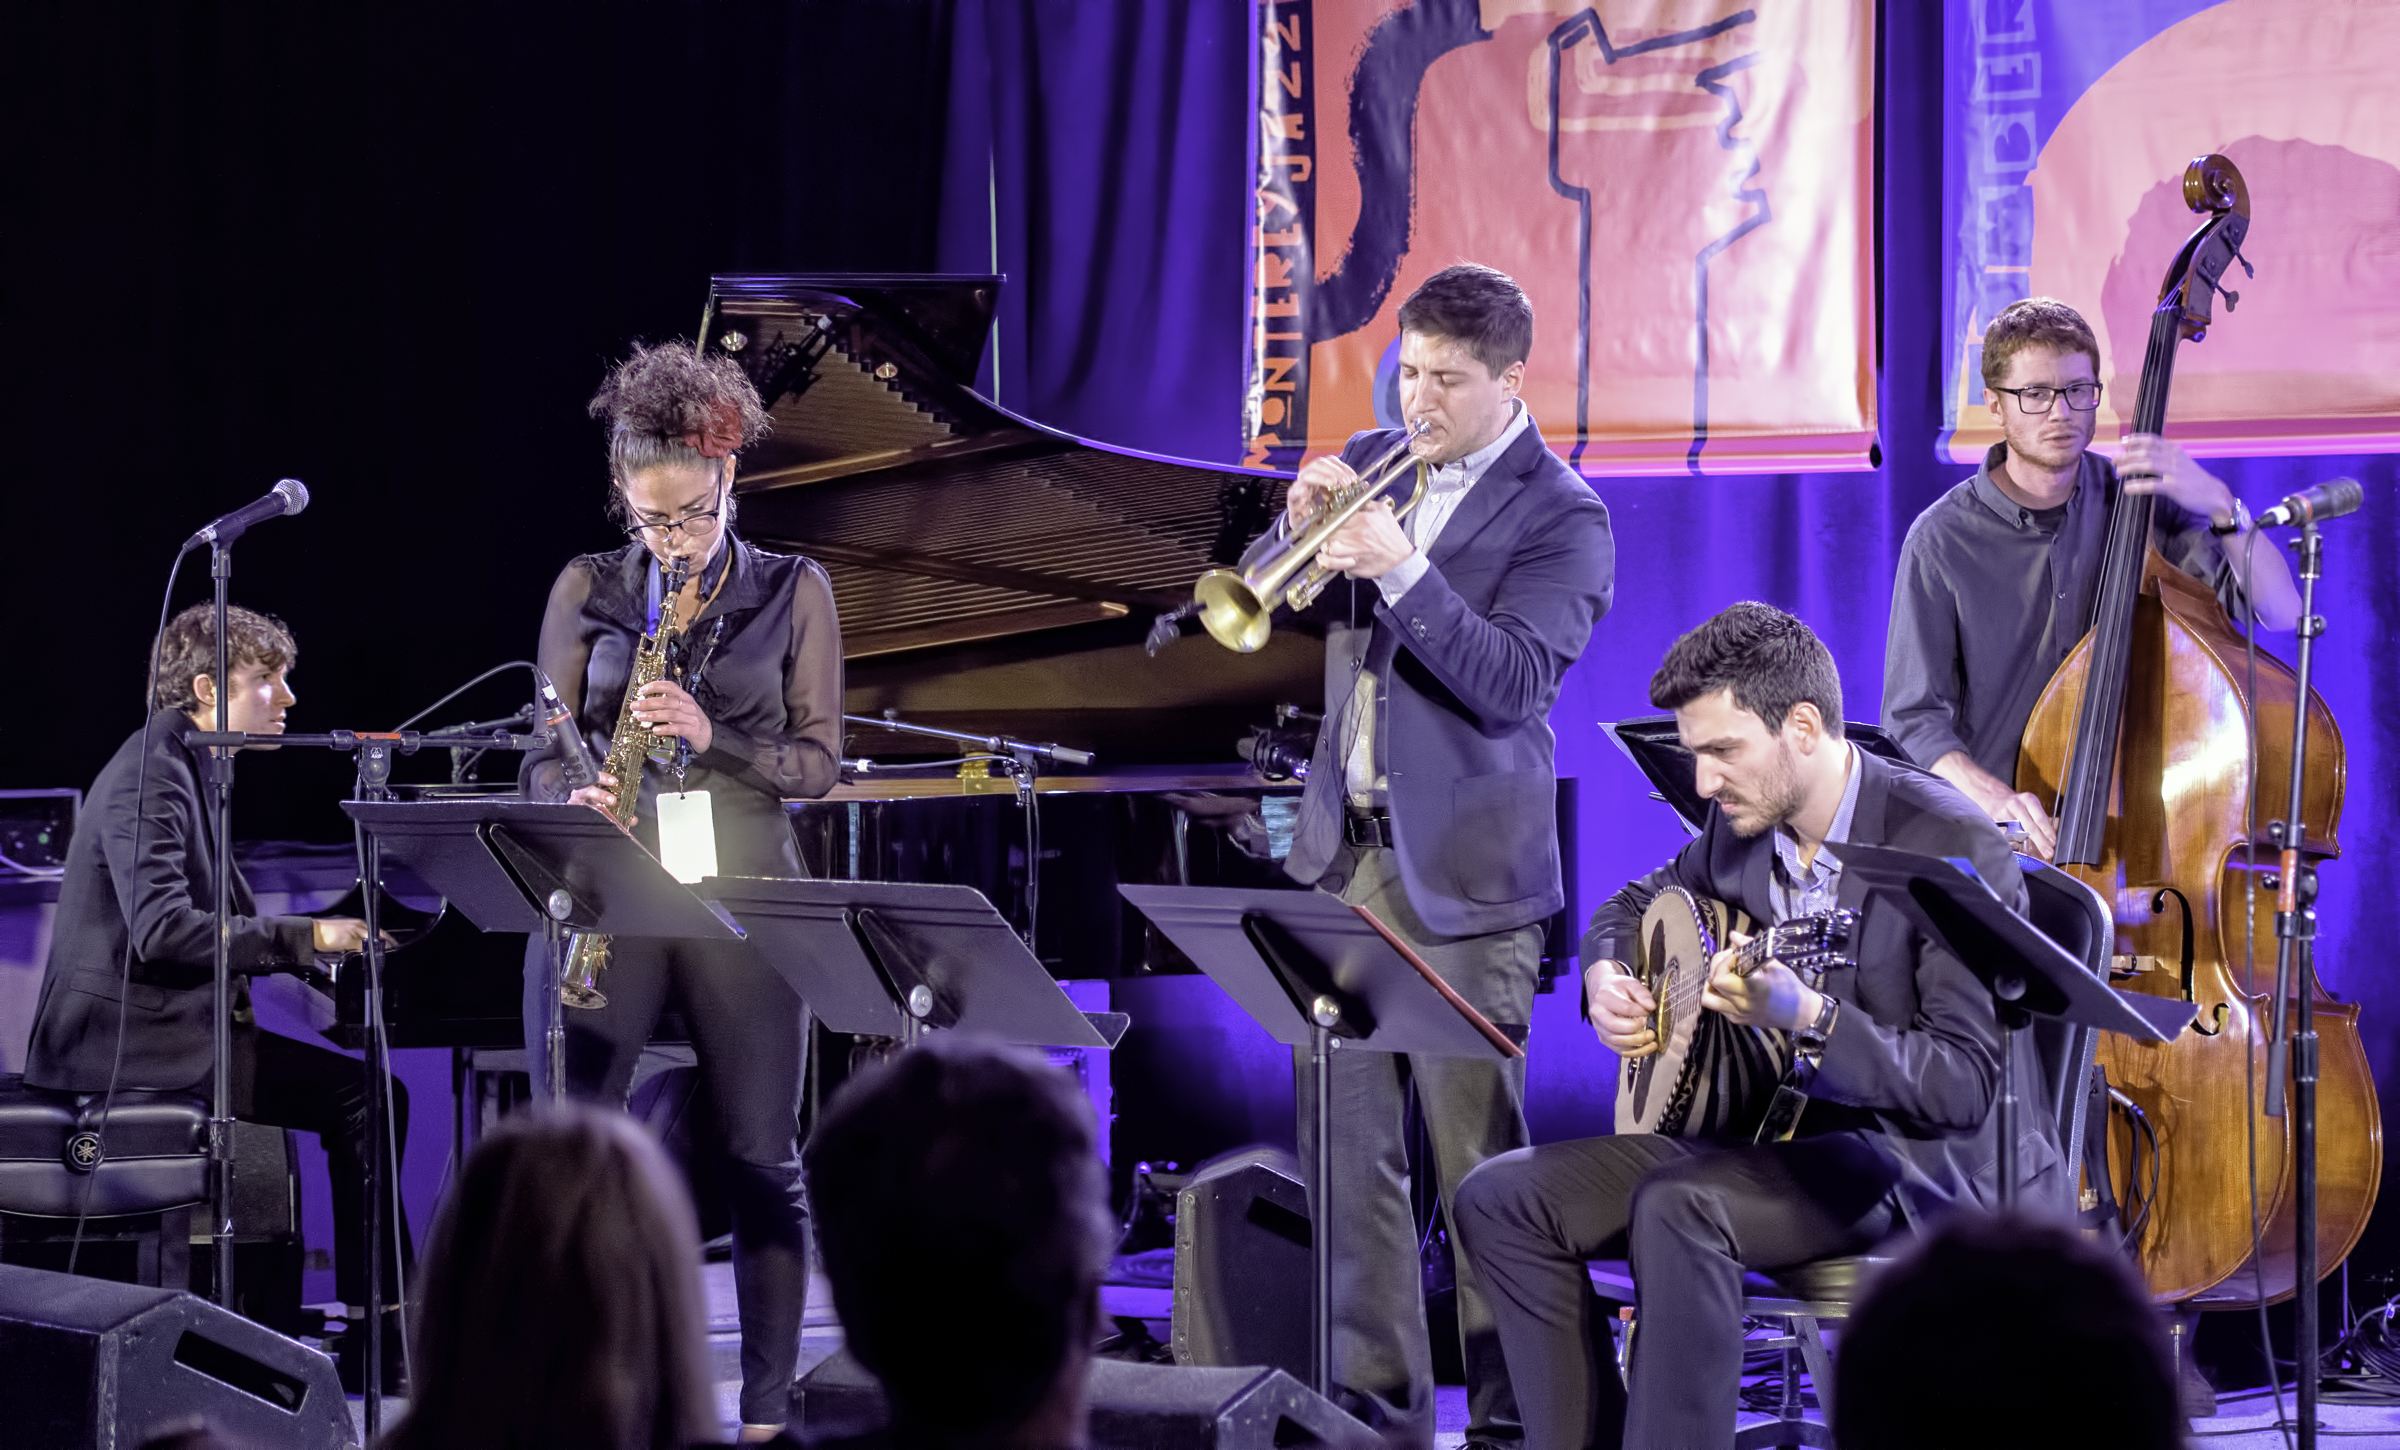 Chase Morrin, Lihi Haruvi, Andrew McAnsh, Vasilis Kostas and Jared Henderson with the Berklee Global Jazz Ambassadors at the Monterey Jazz Festival